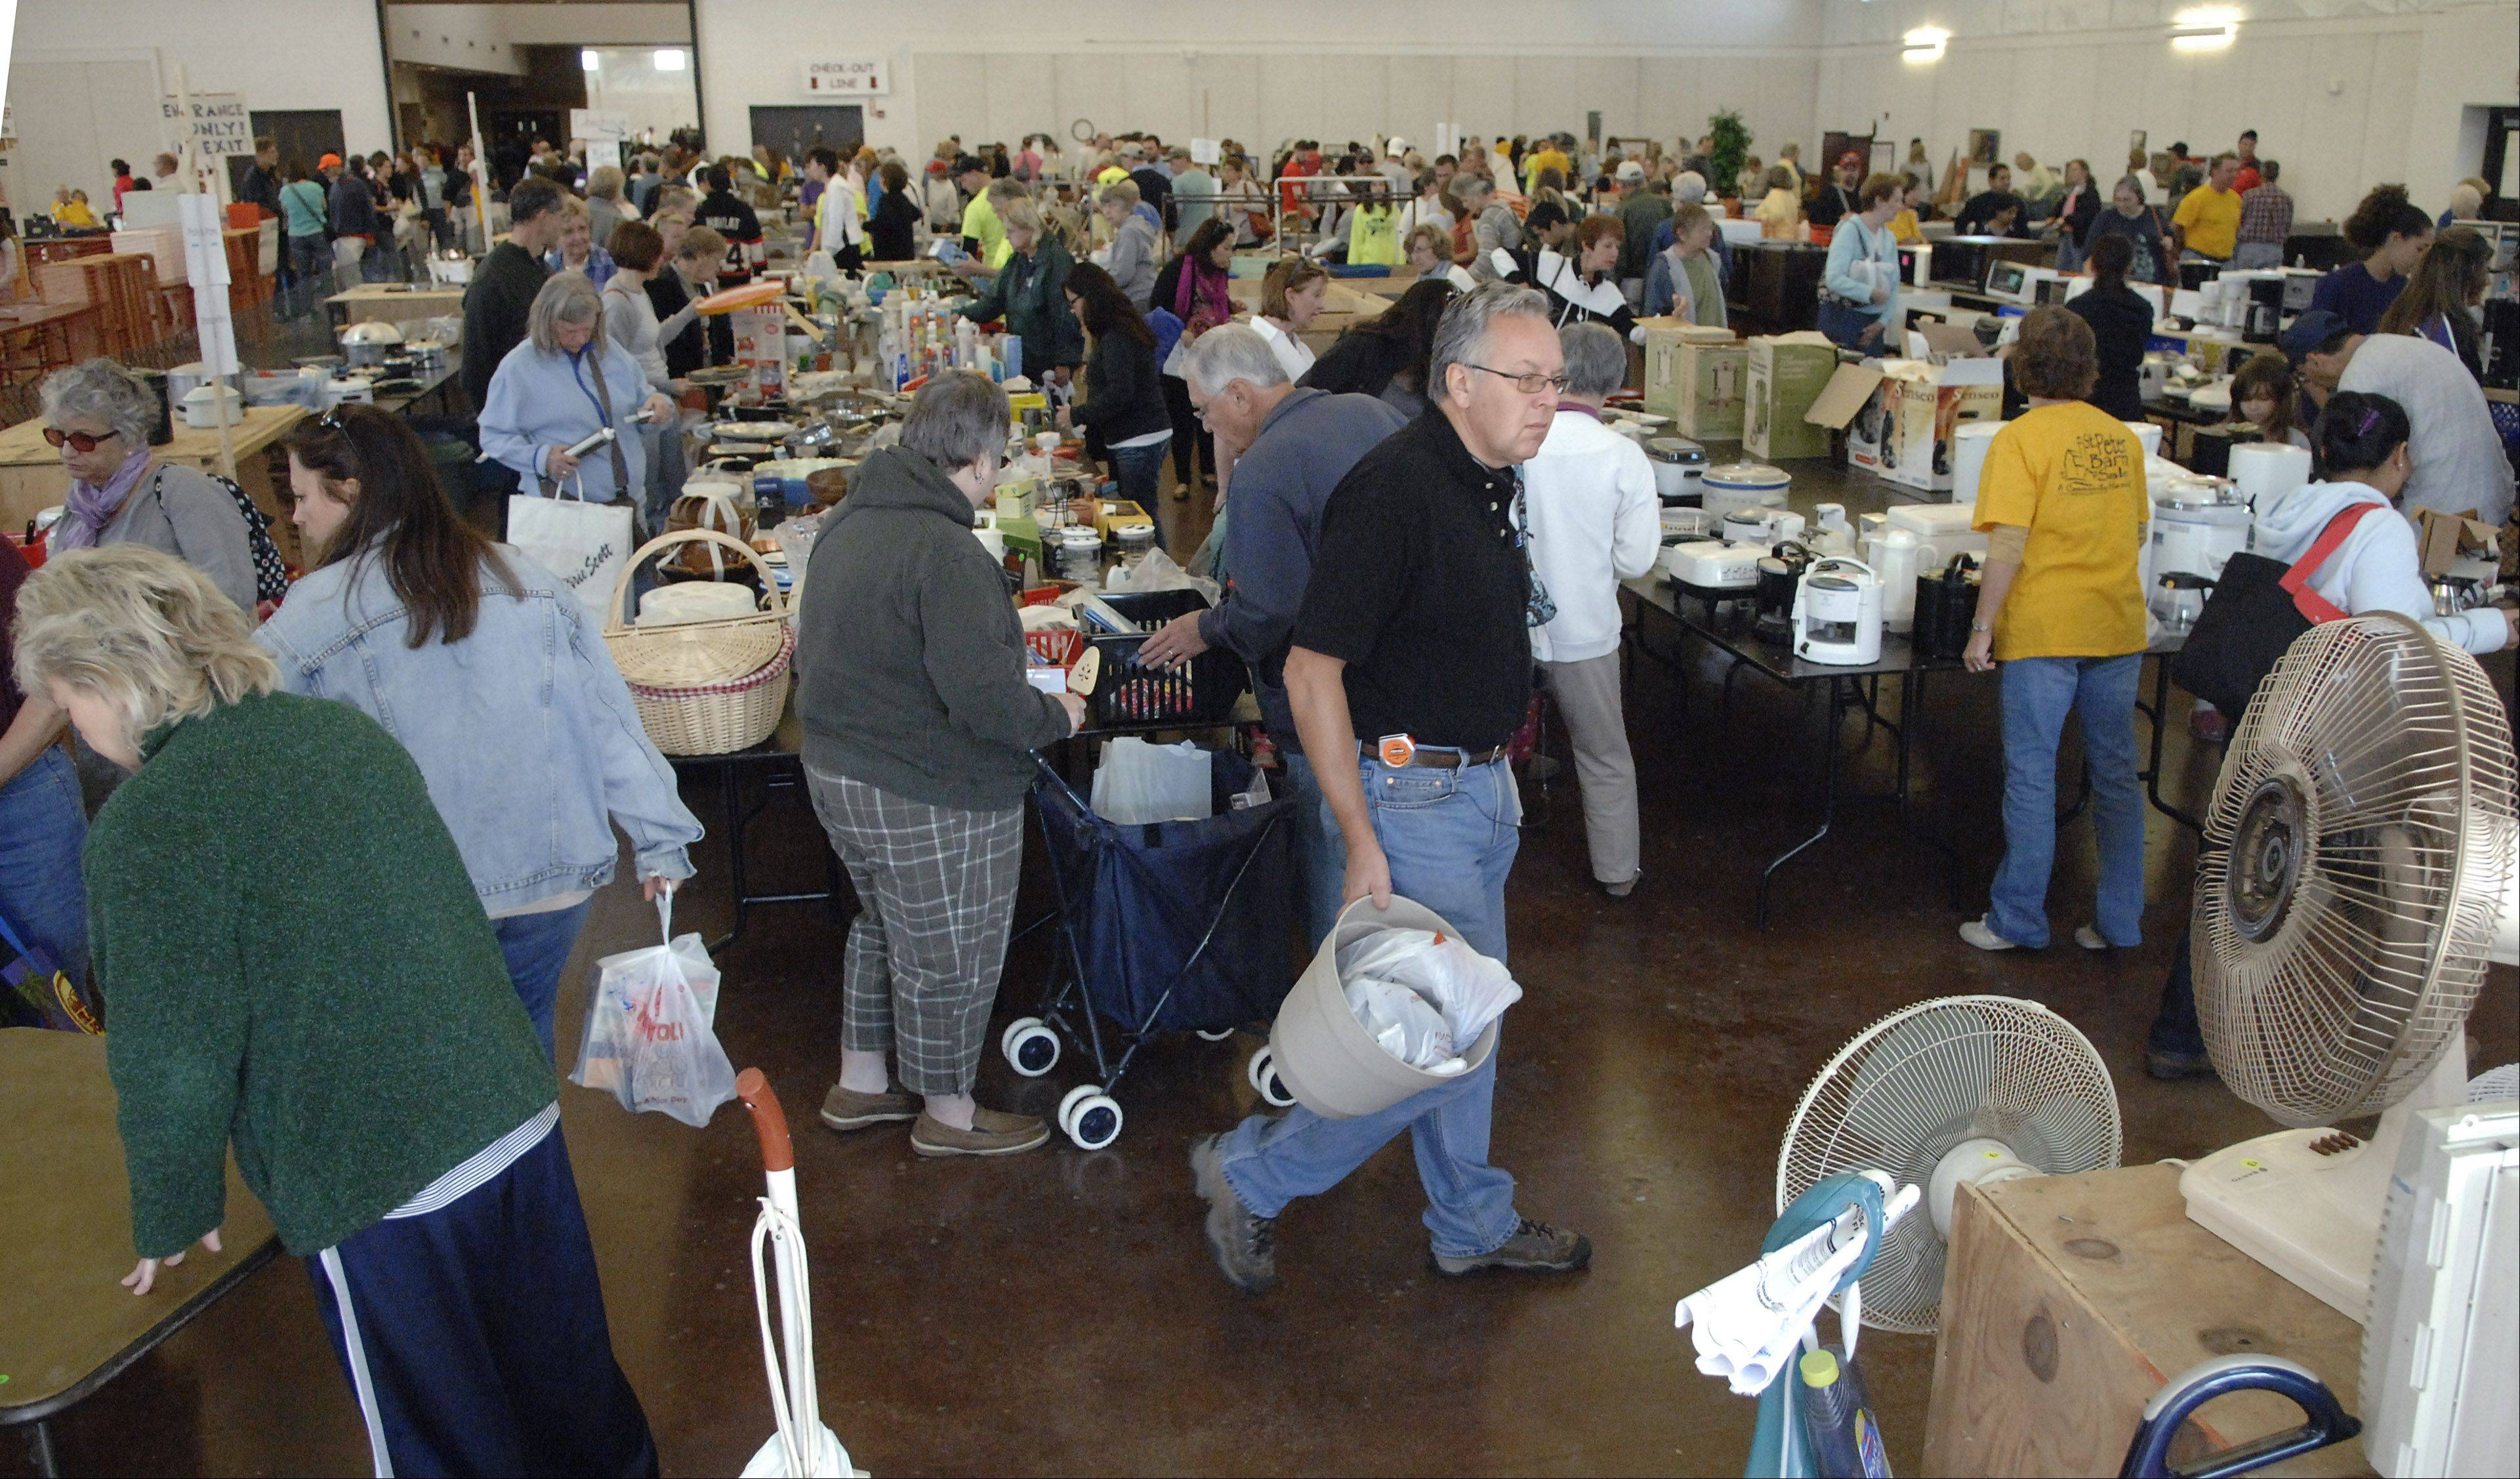 Shoppers pack the kitchen and home appliances area in one of the buildings at the Kane County Fairgrounds for the St. Peter Barn Sale in September 2011.